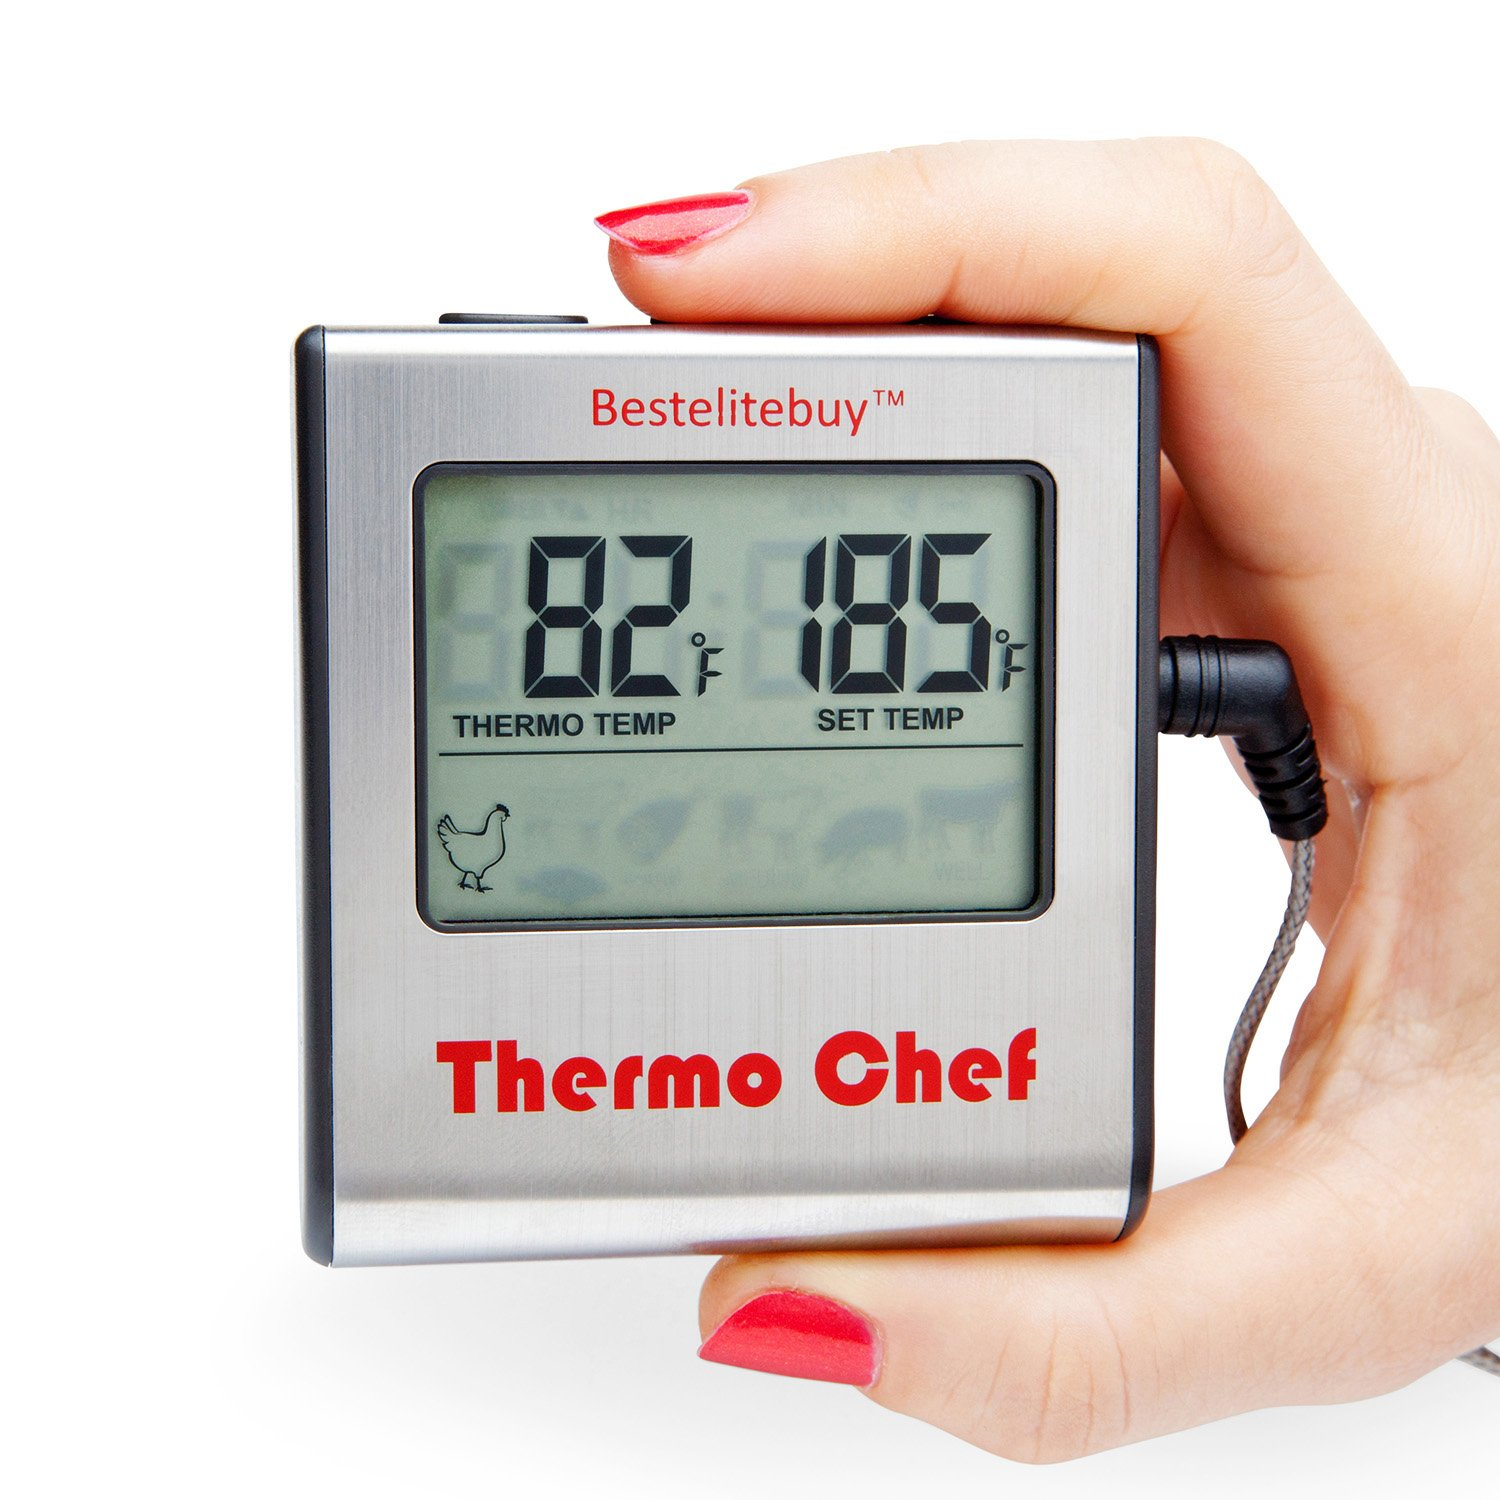 """Thermo Chef"" Cook like a Chef With The New Updated Universal Digital Meat Thermometer With A Large LCD Display For Cooking Food In The Kitchen Oven/Smoker Add It To Your Grill and BBQ Accessories"